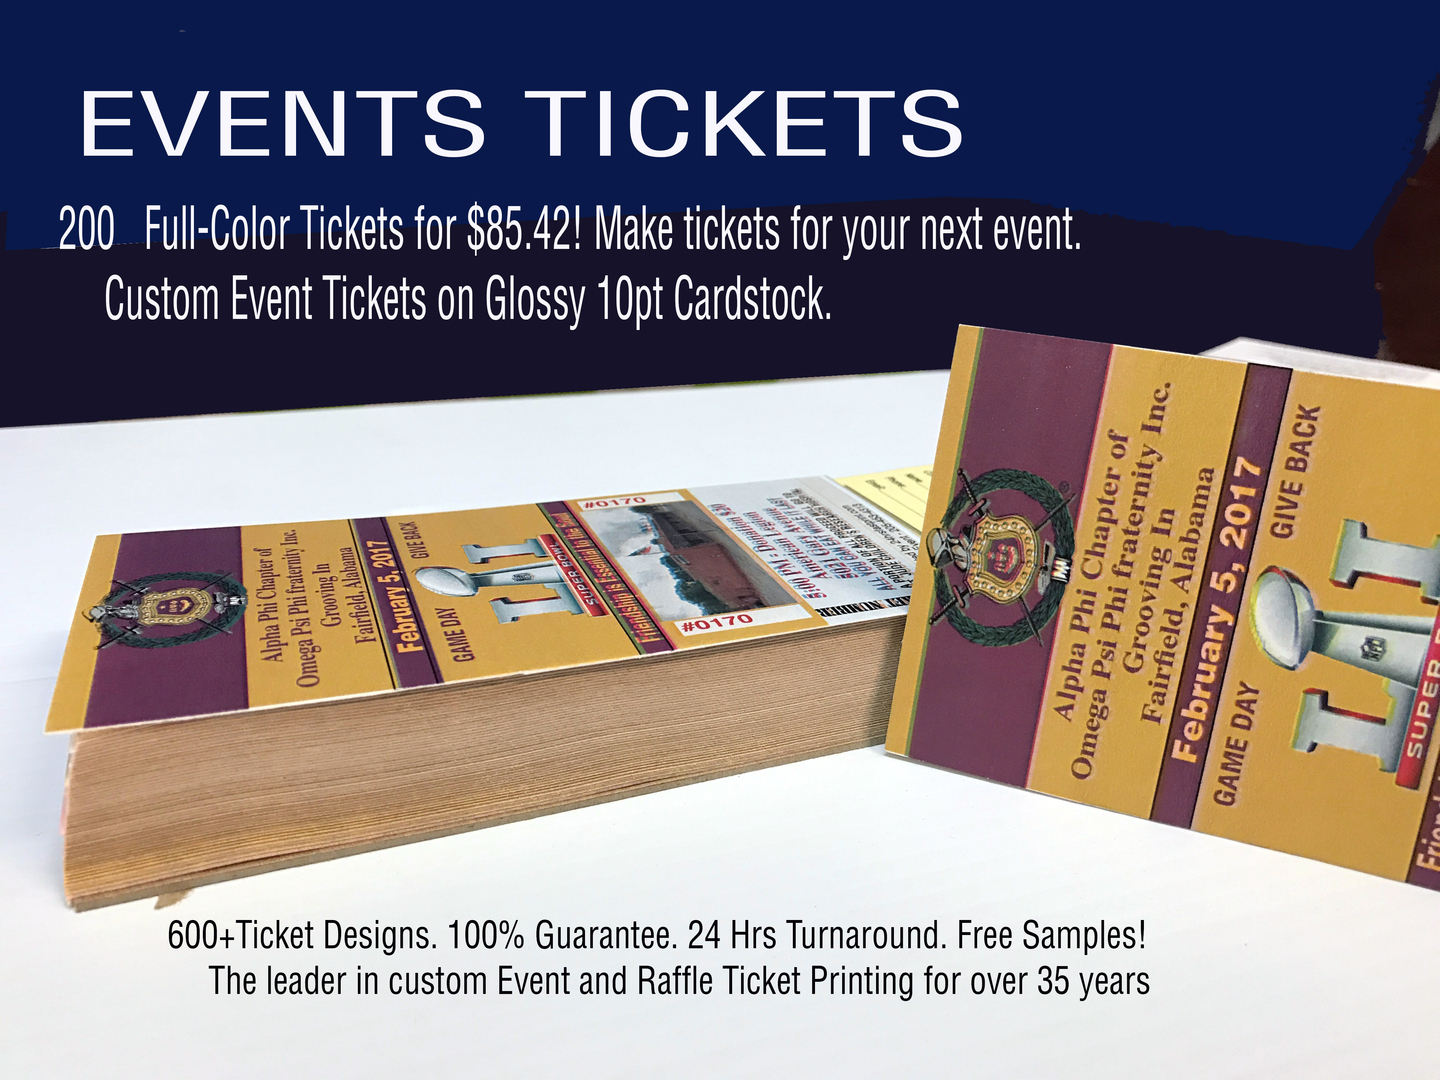 Tickets Raffle 24Hrs Fast Print in Birmingham AL – How to Make Tickets for an Event Free